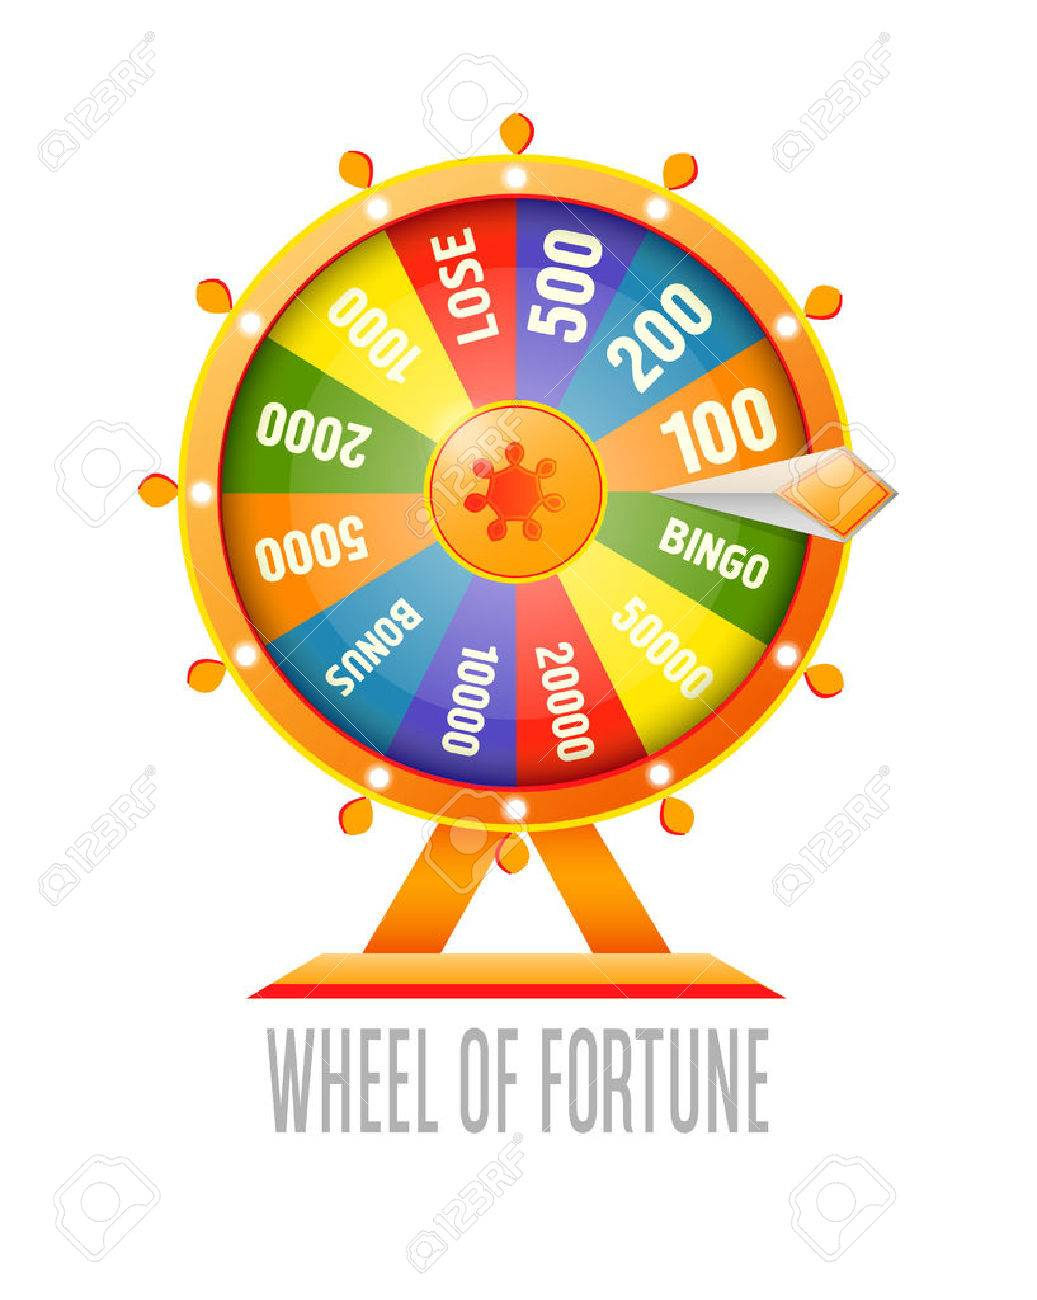 Wheel of fortune infographic design element. Flat style vector illustration isolated on white background. - 58662473